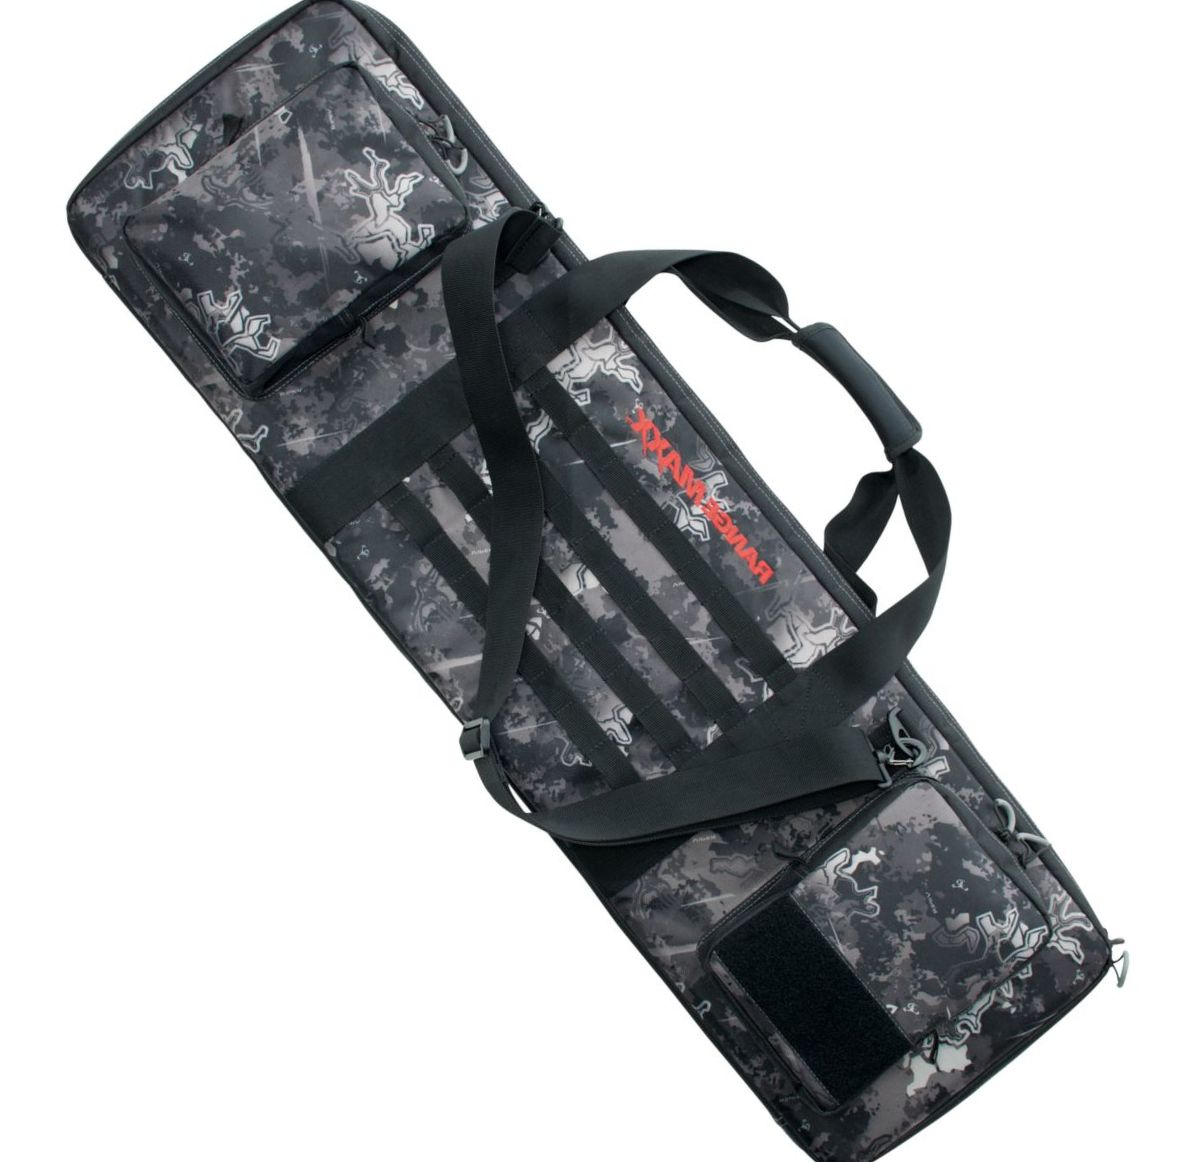 RangeMaxx® Viper Tactical Gun Case